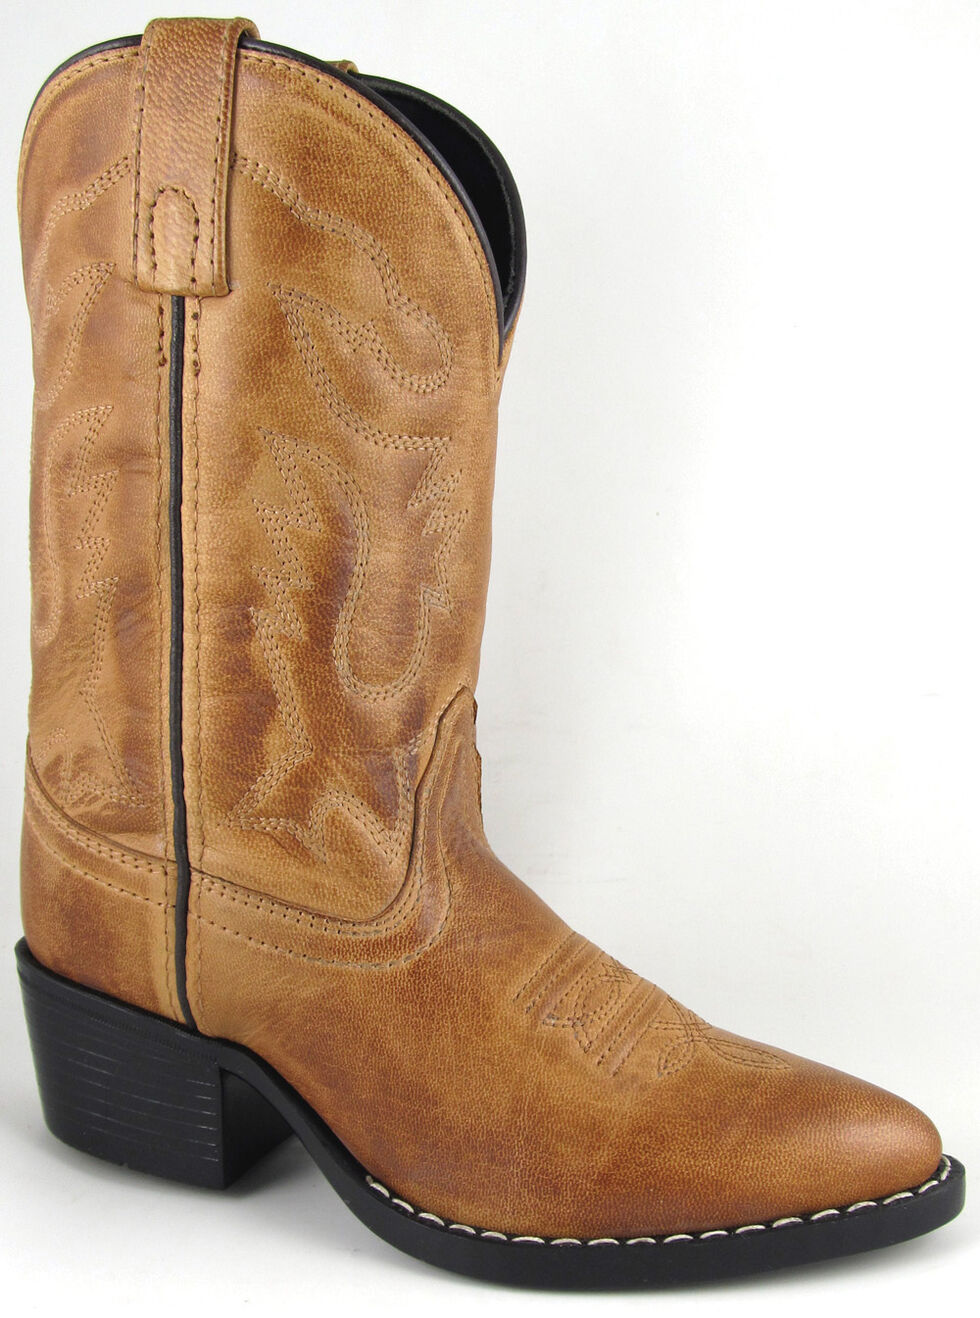 Smoky Mountain Boys' Dakota Western Boots - Medium Toe, Tan, hi-res